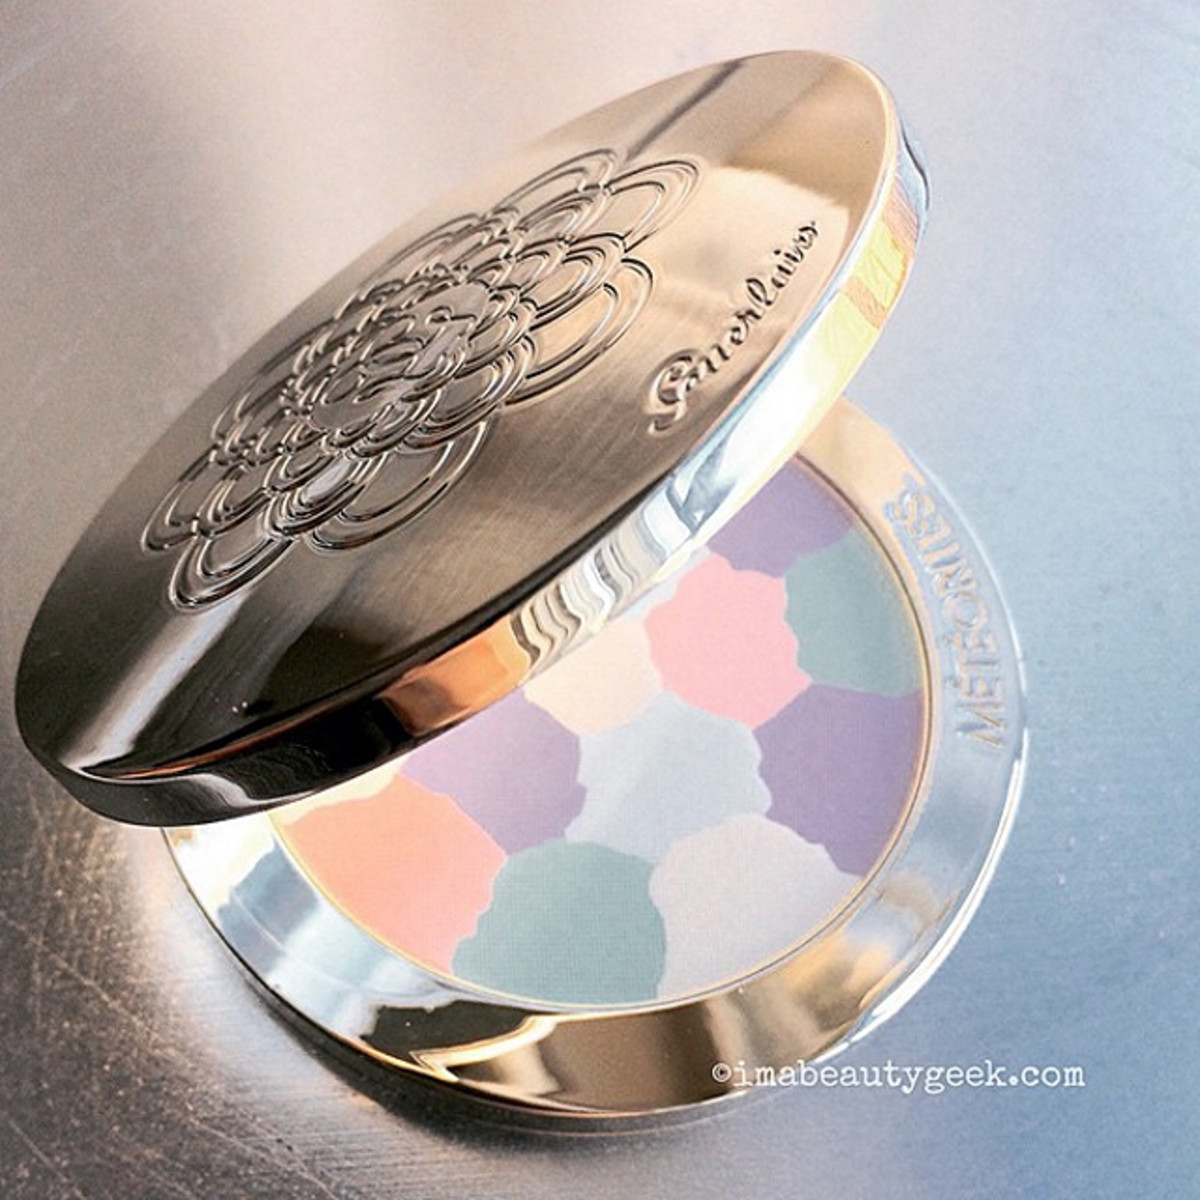 Pretty Pastels for Spring: Guerlain Météorites compact in 02 Clair/Light TOTALLY COUNTS. *grin*